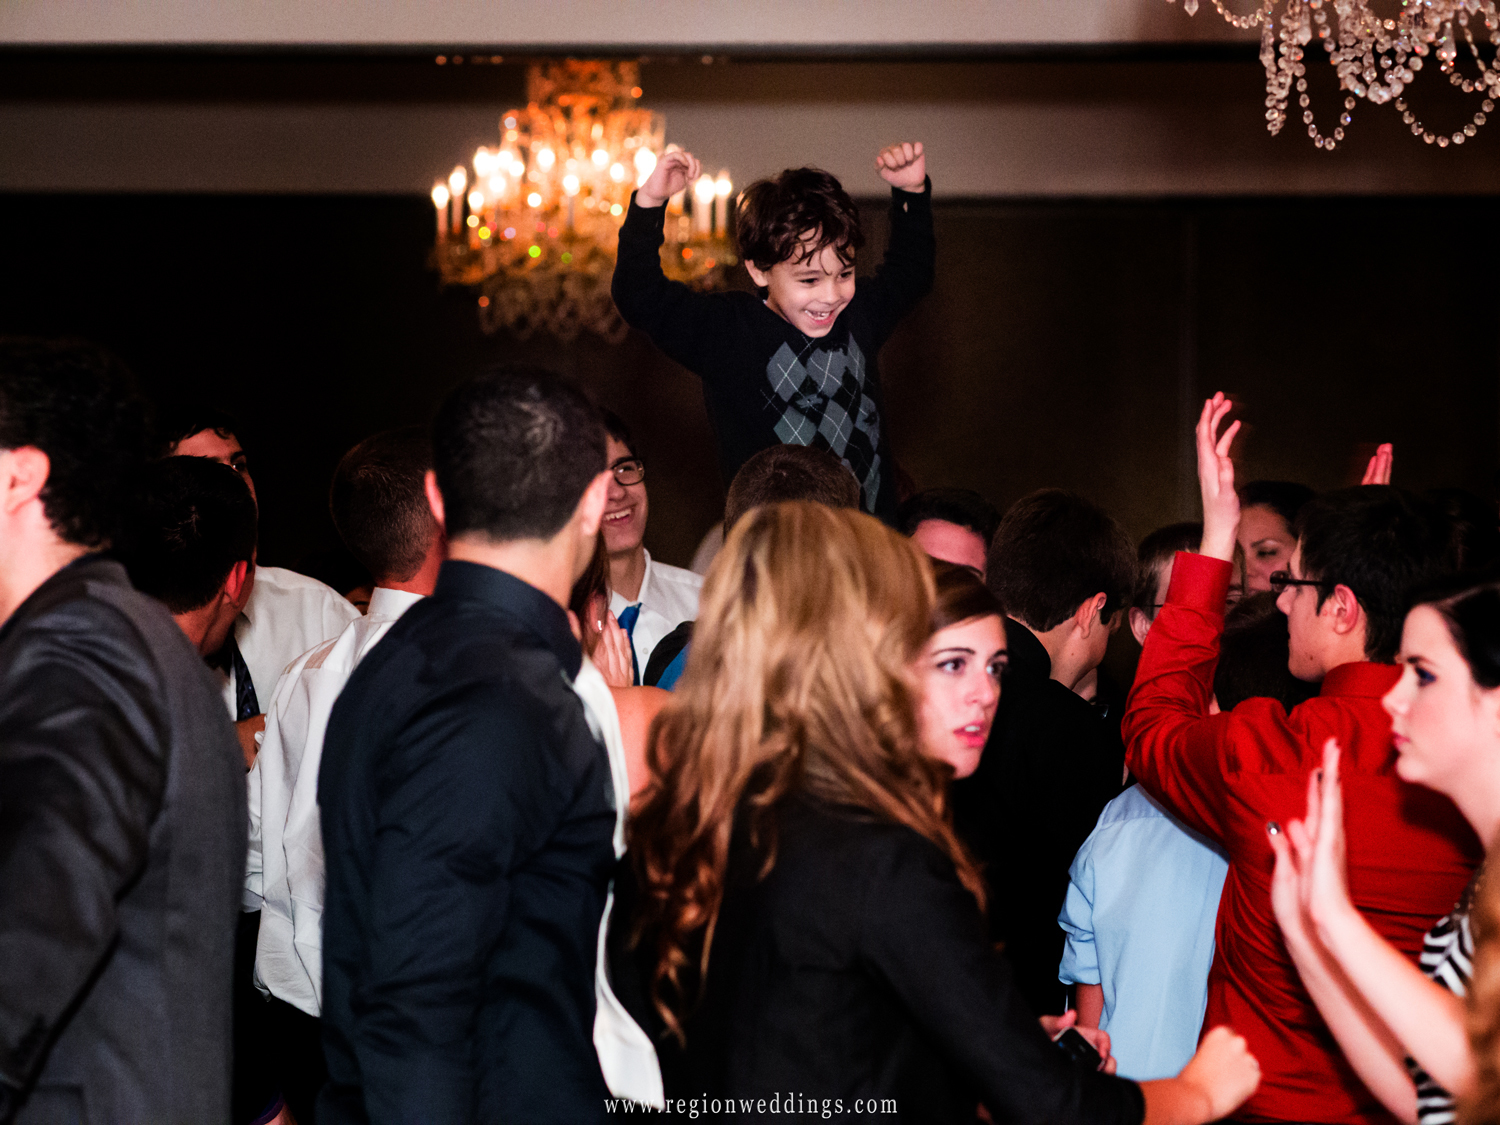 A child crowd surfs at a wedding reception at The Dream Palace in Lynwood, Illinois.